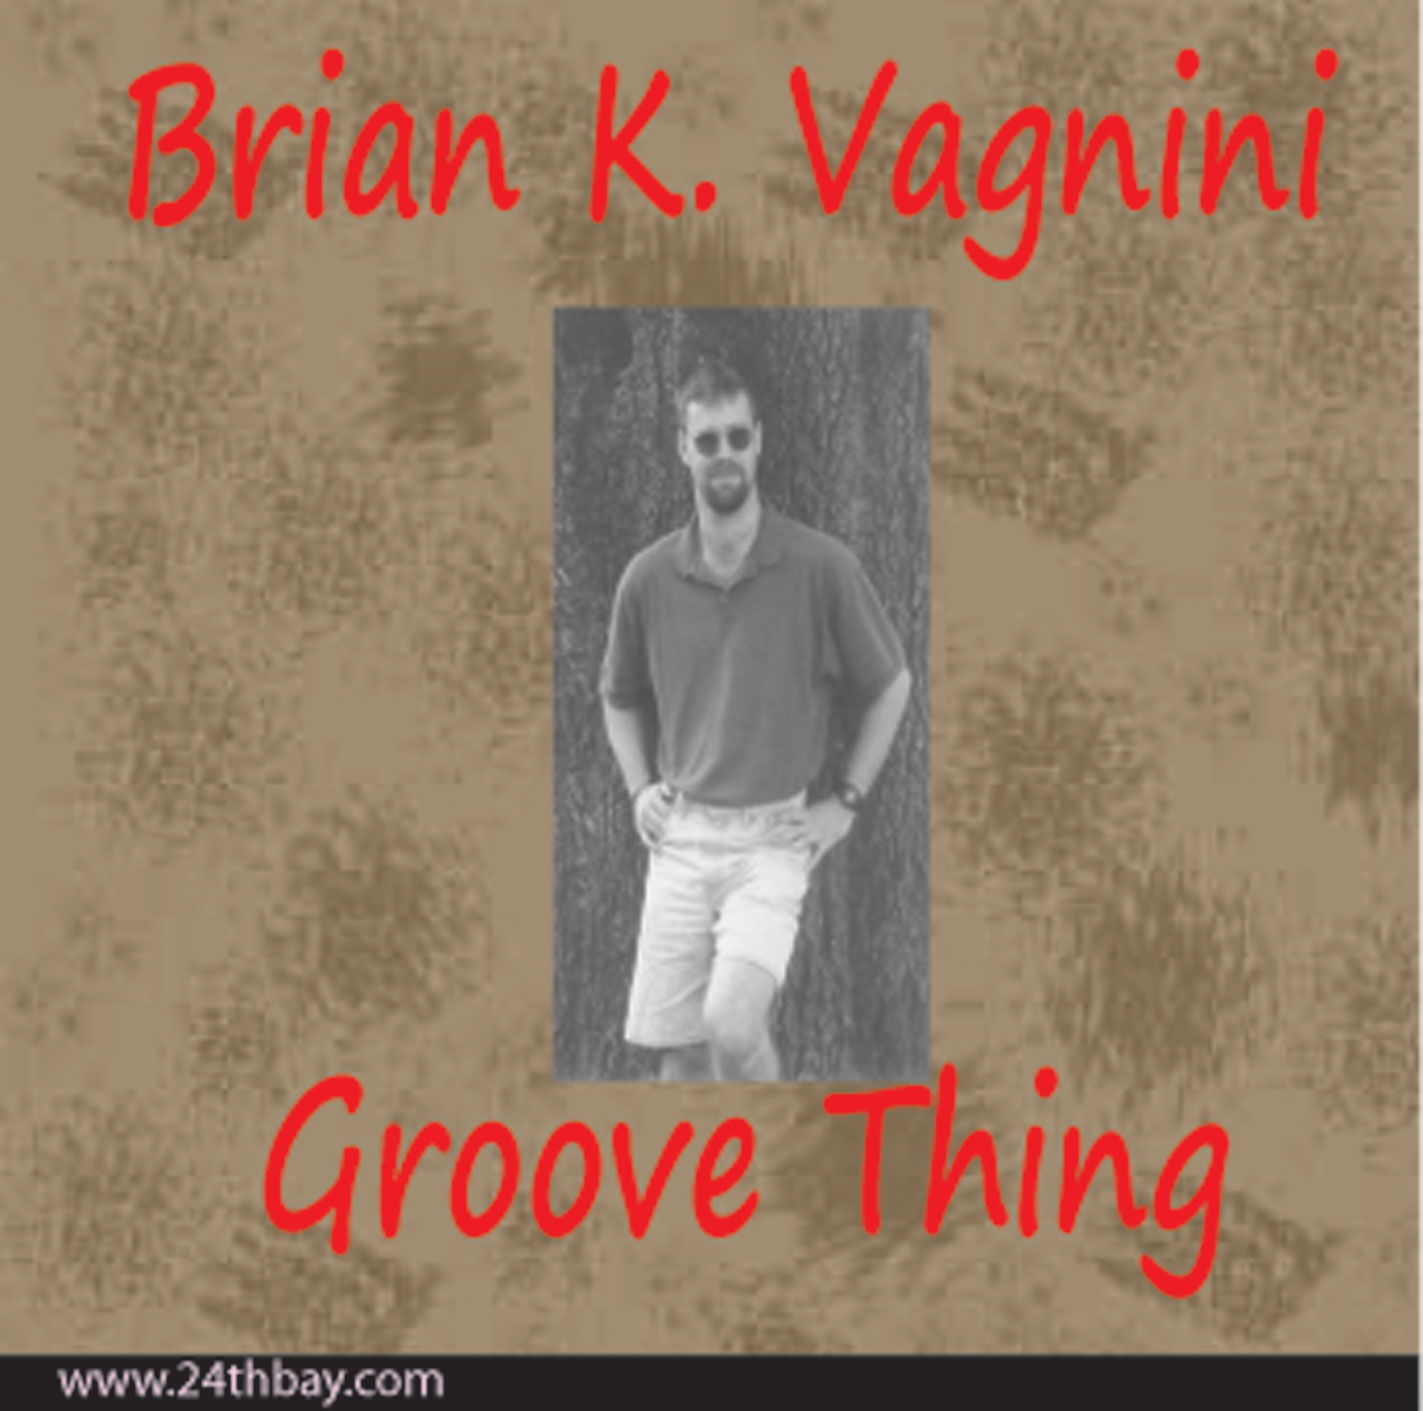 Groove Thing by Brian K. Vagnini